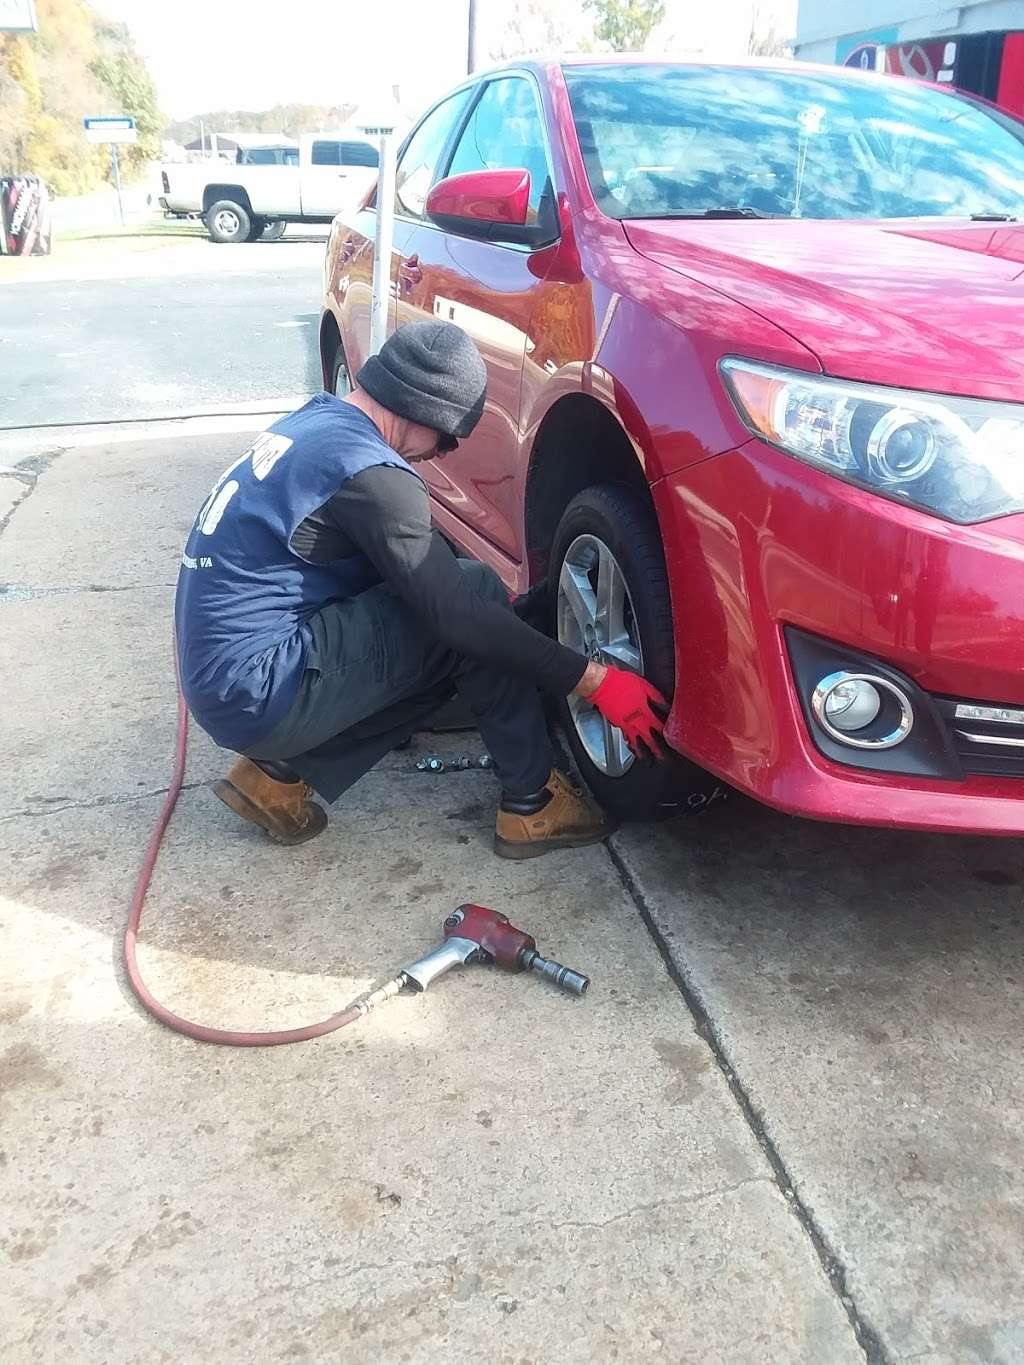 Mikes Tire Center - car repair  | Photo 6 of 10 | Address: 1217 1/2 Lafayette Blvd, Fredericksburg, VA 22401, USA | Phone: (540) 373-0779